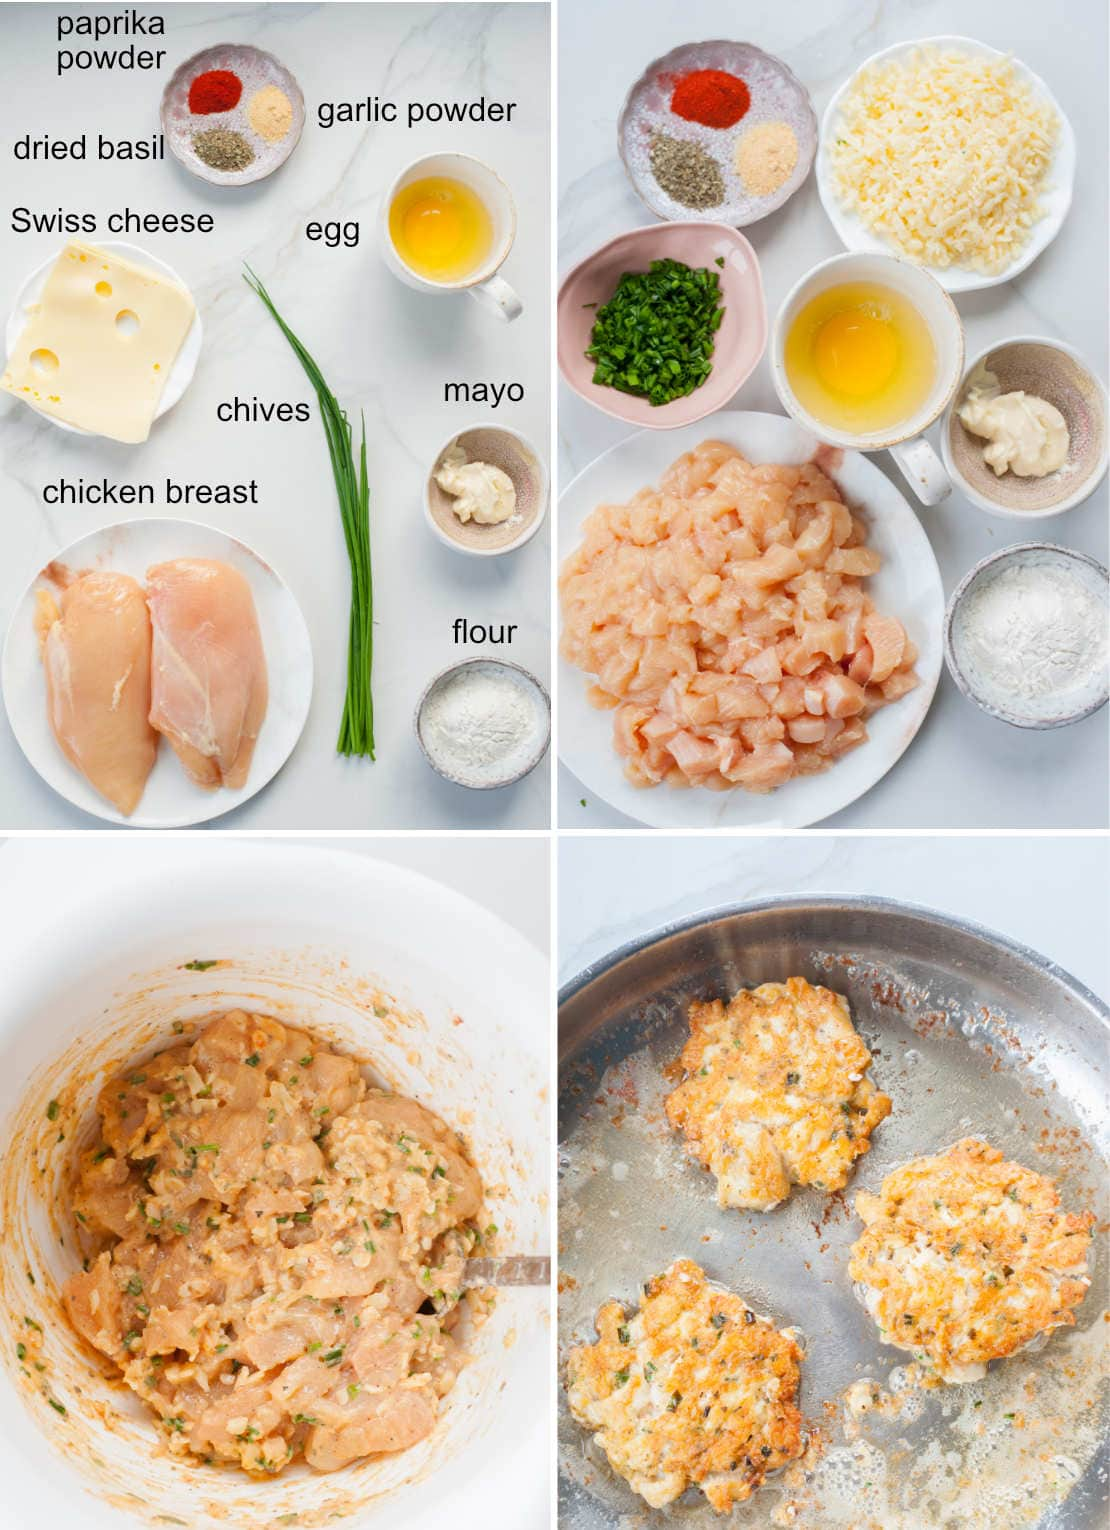 cheesy chicken fritters ingredients and preparation steps